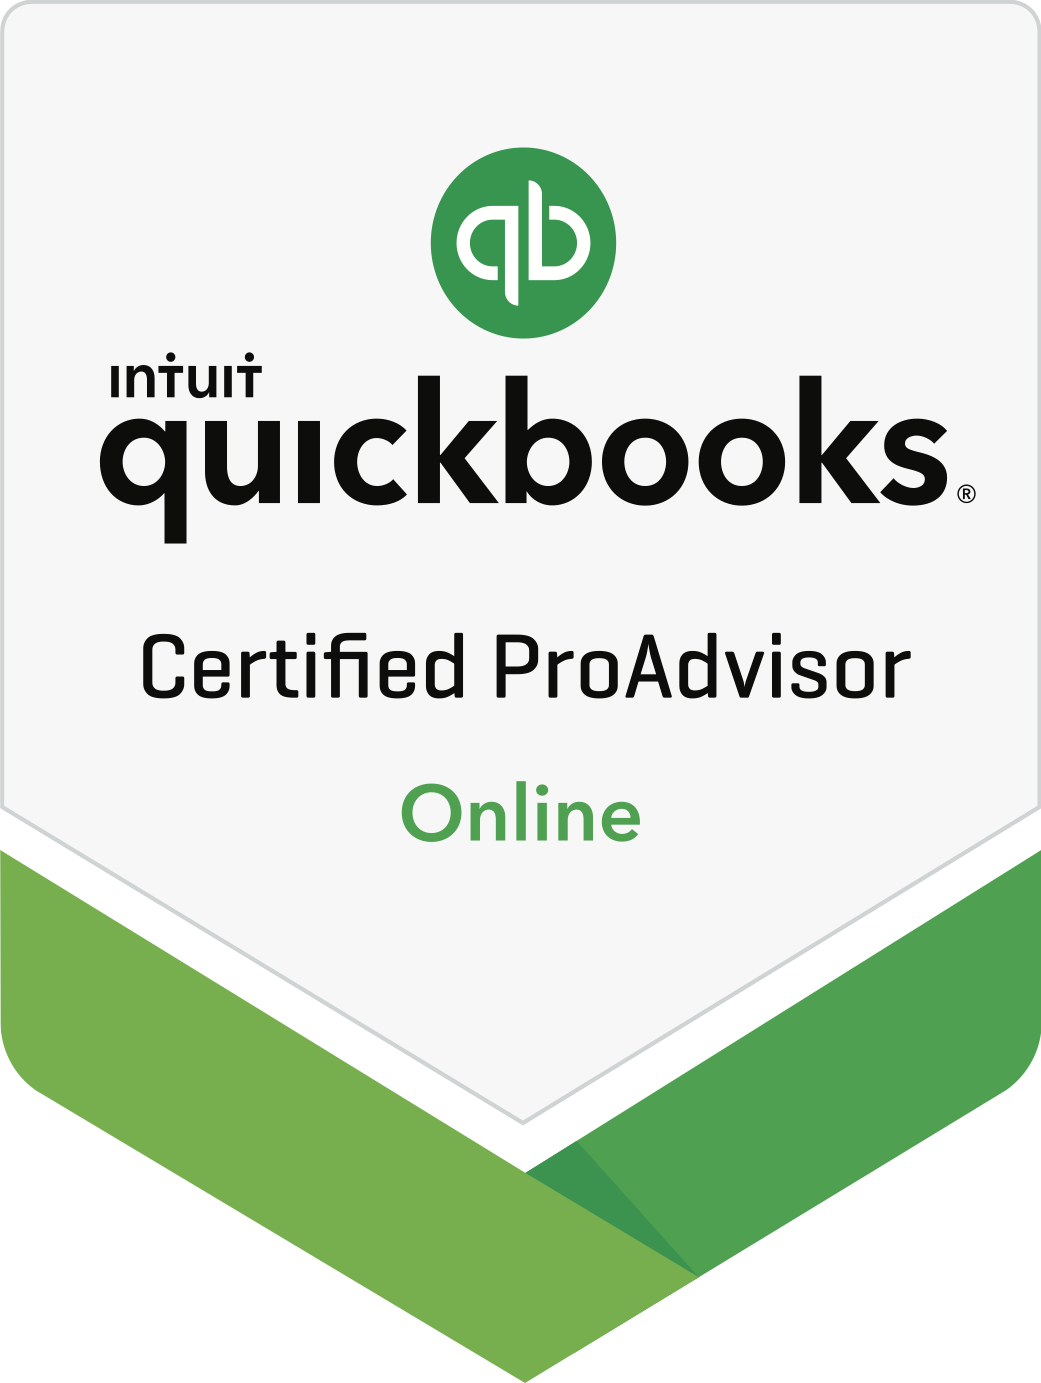 Quickbooks certified proadvisor affiliation